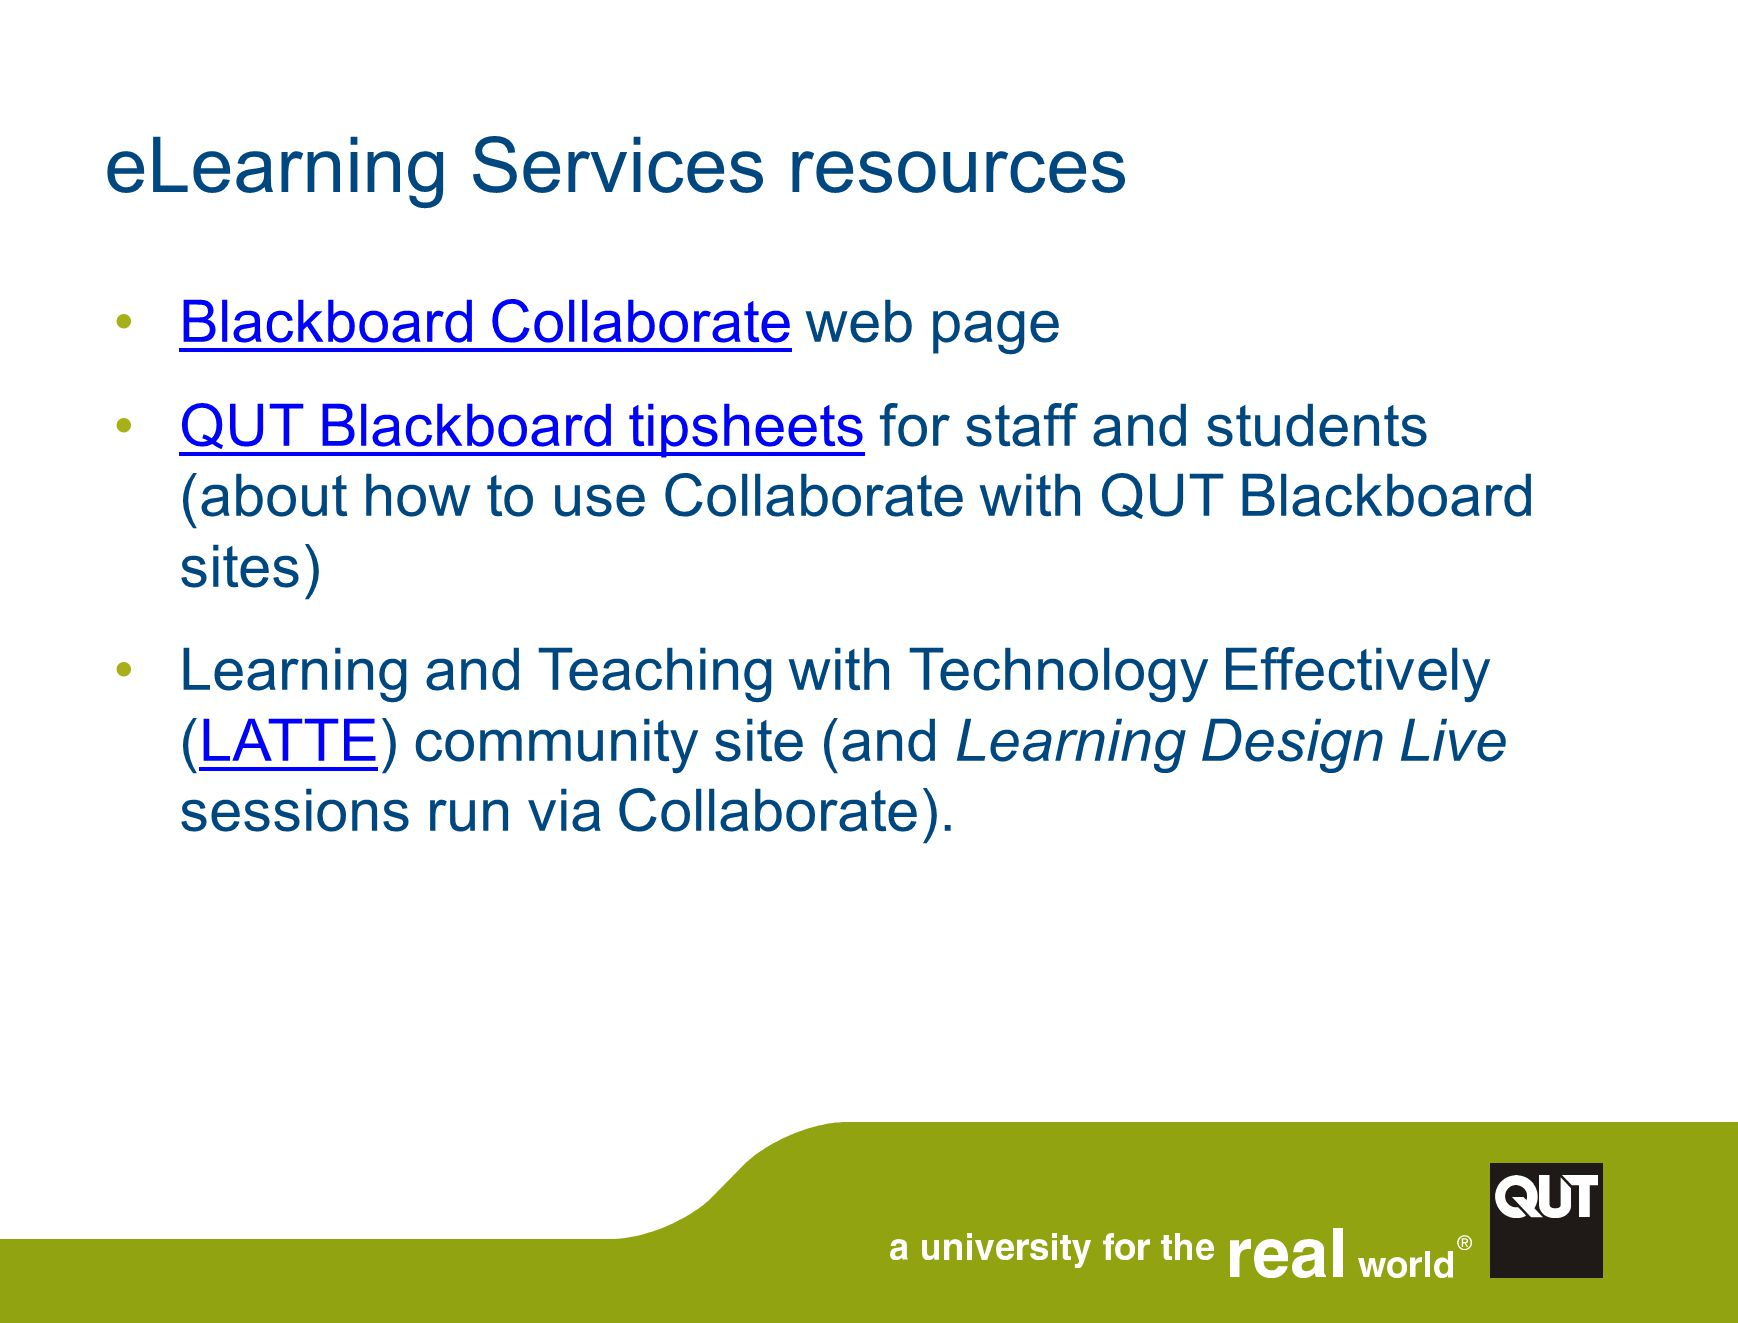 eLearning Services resources Blackboard Collaborate web pageBlackboard Collaborate QUT Blackboard tipsheets for staff and students (about how to use Collaborate with QUT Blackboard sites)QUT Blackboard tipsheets Learning and Teaching with Technology Effectively (LATTE) community site (and Learning Design Live sessions run via Collaborate).LATTE